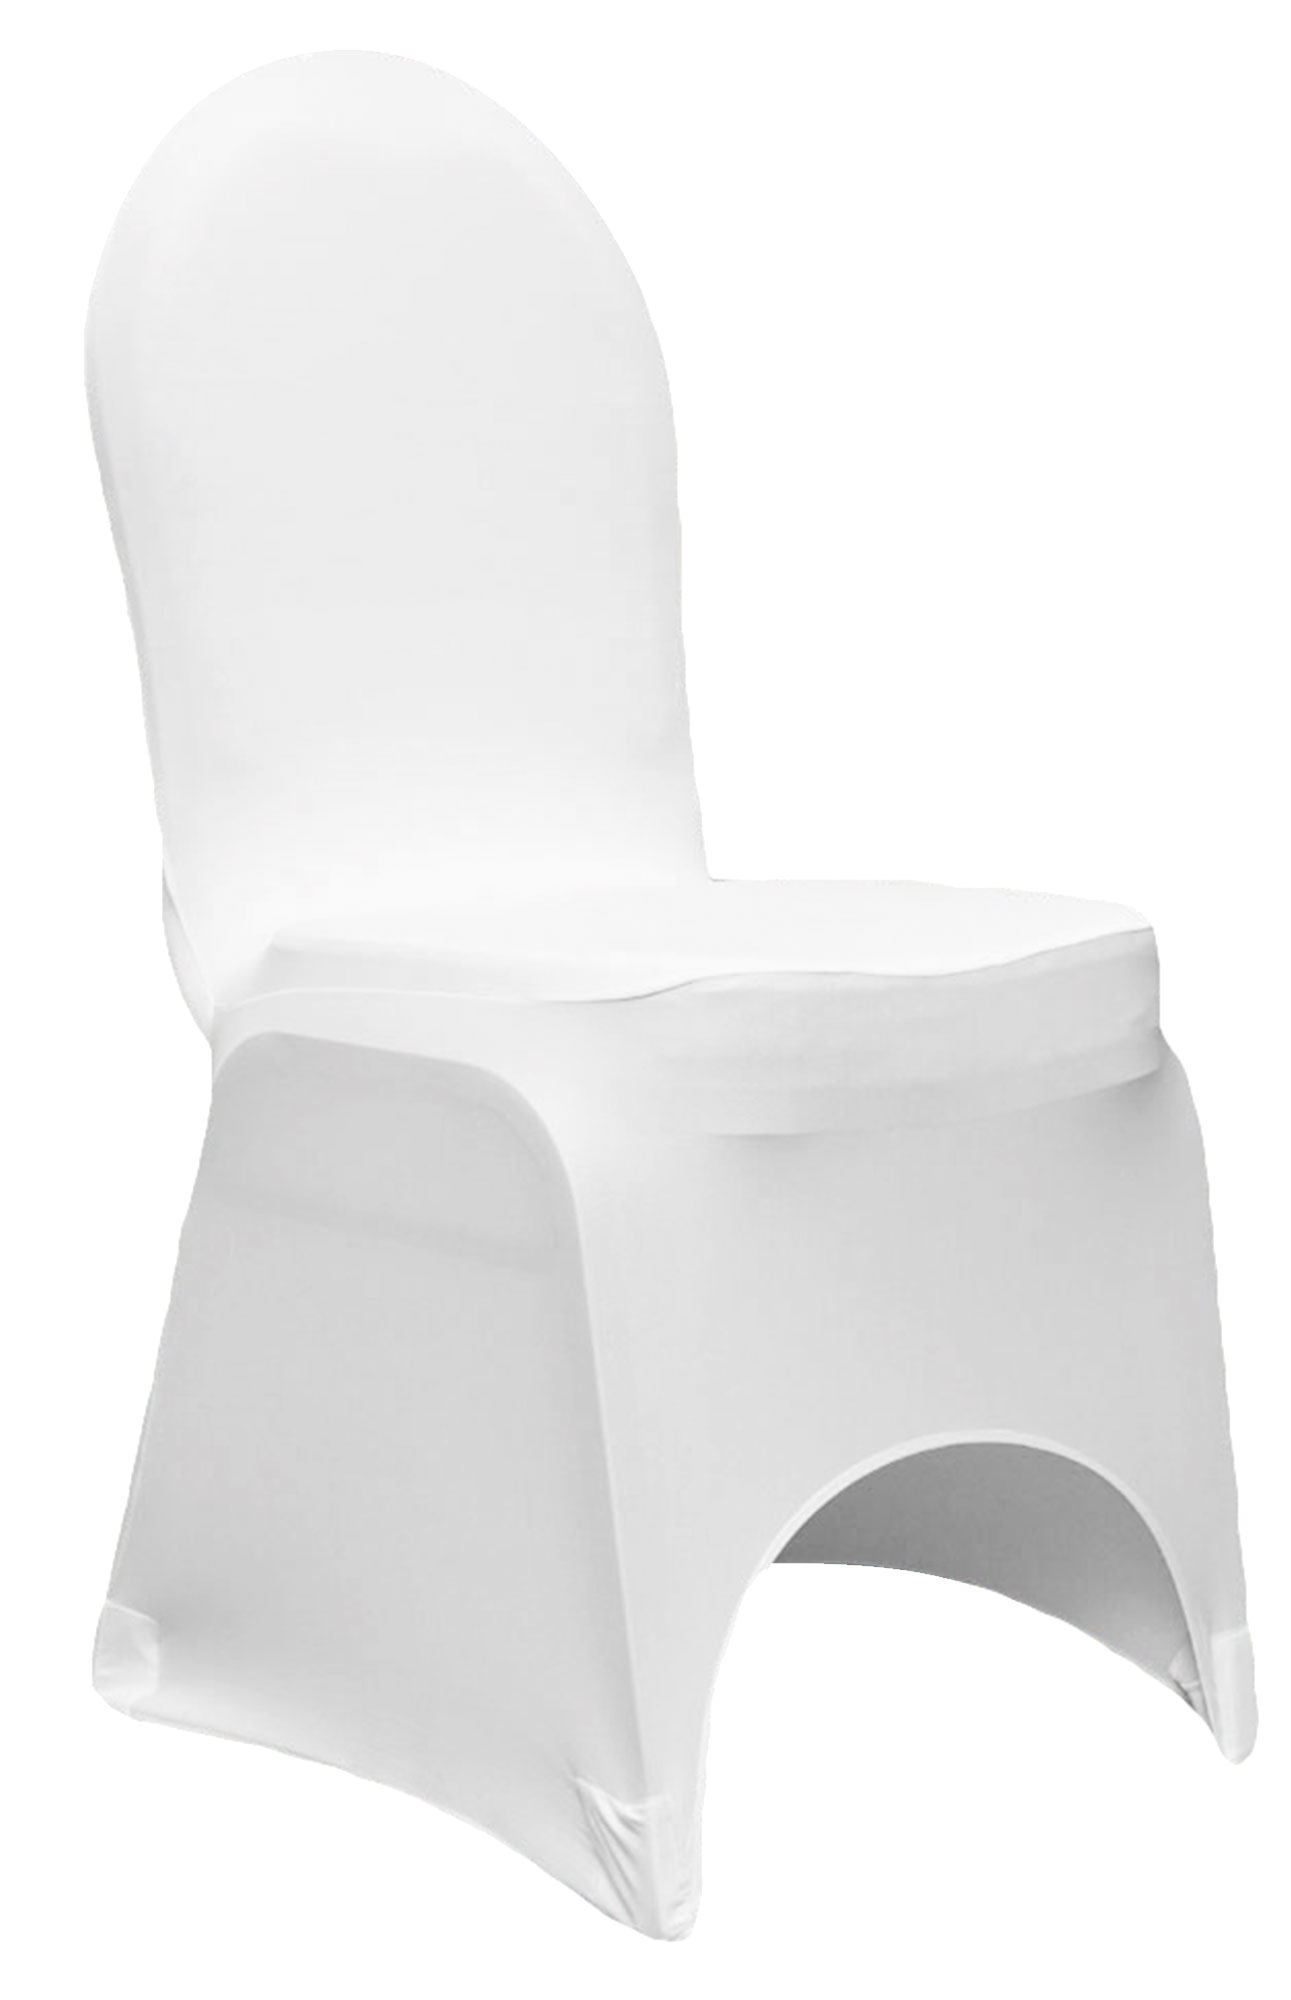 white lycra chair cover for hire